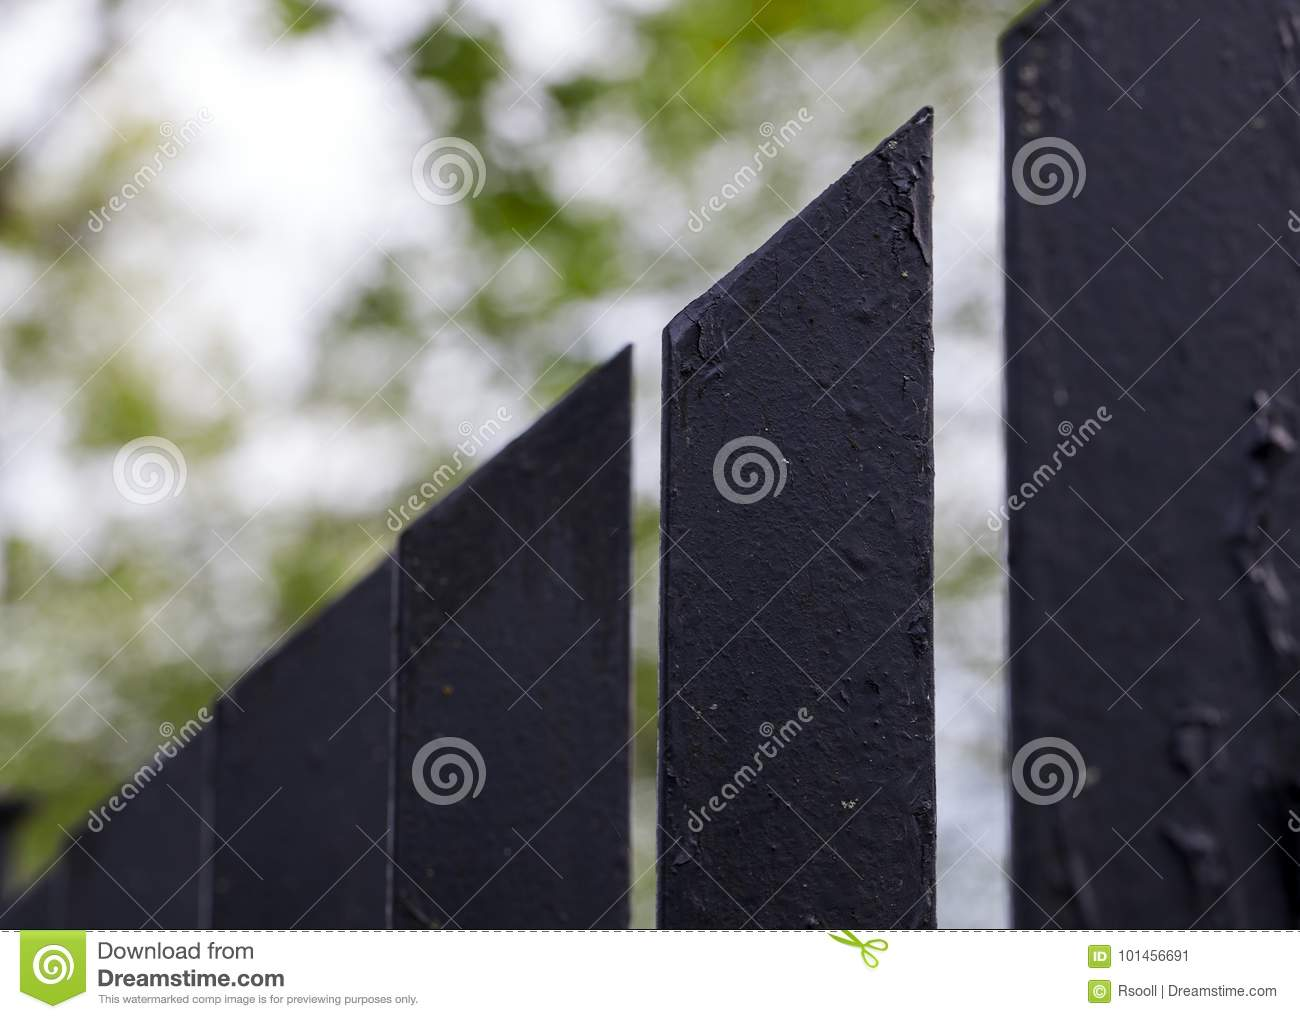 Painted metal fence stock image  Image of oldfashioned - 101456691